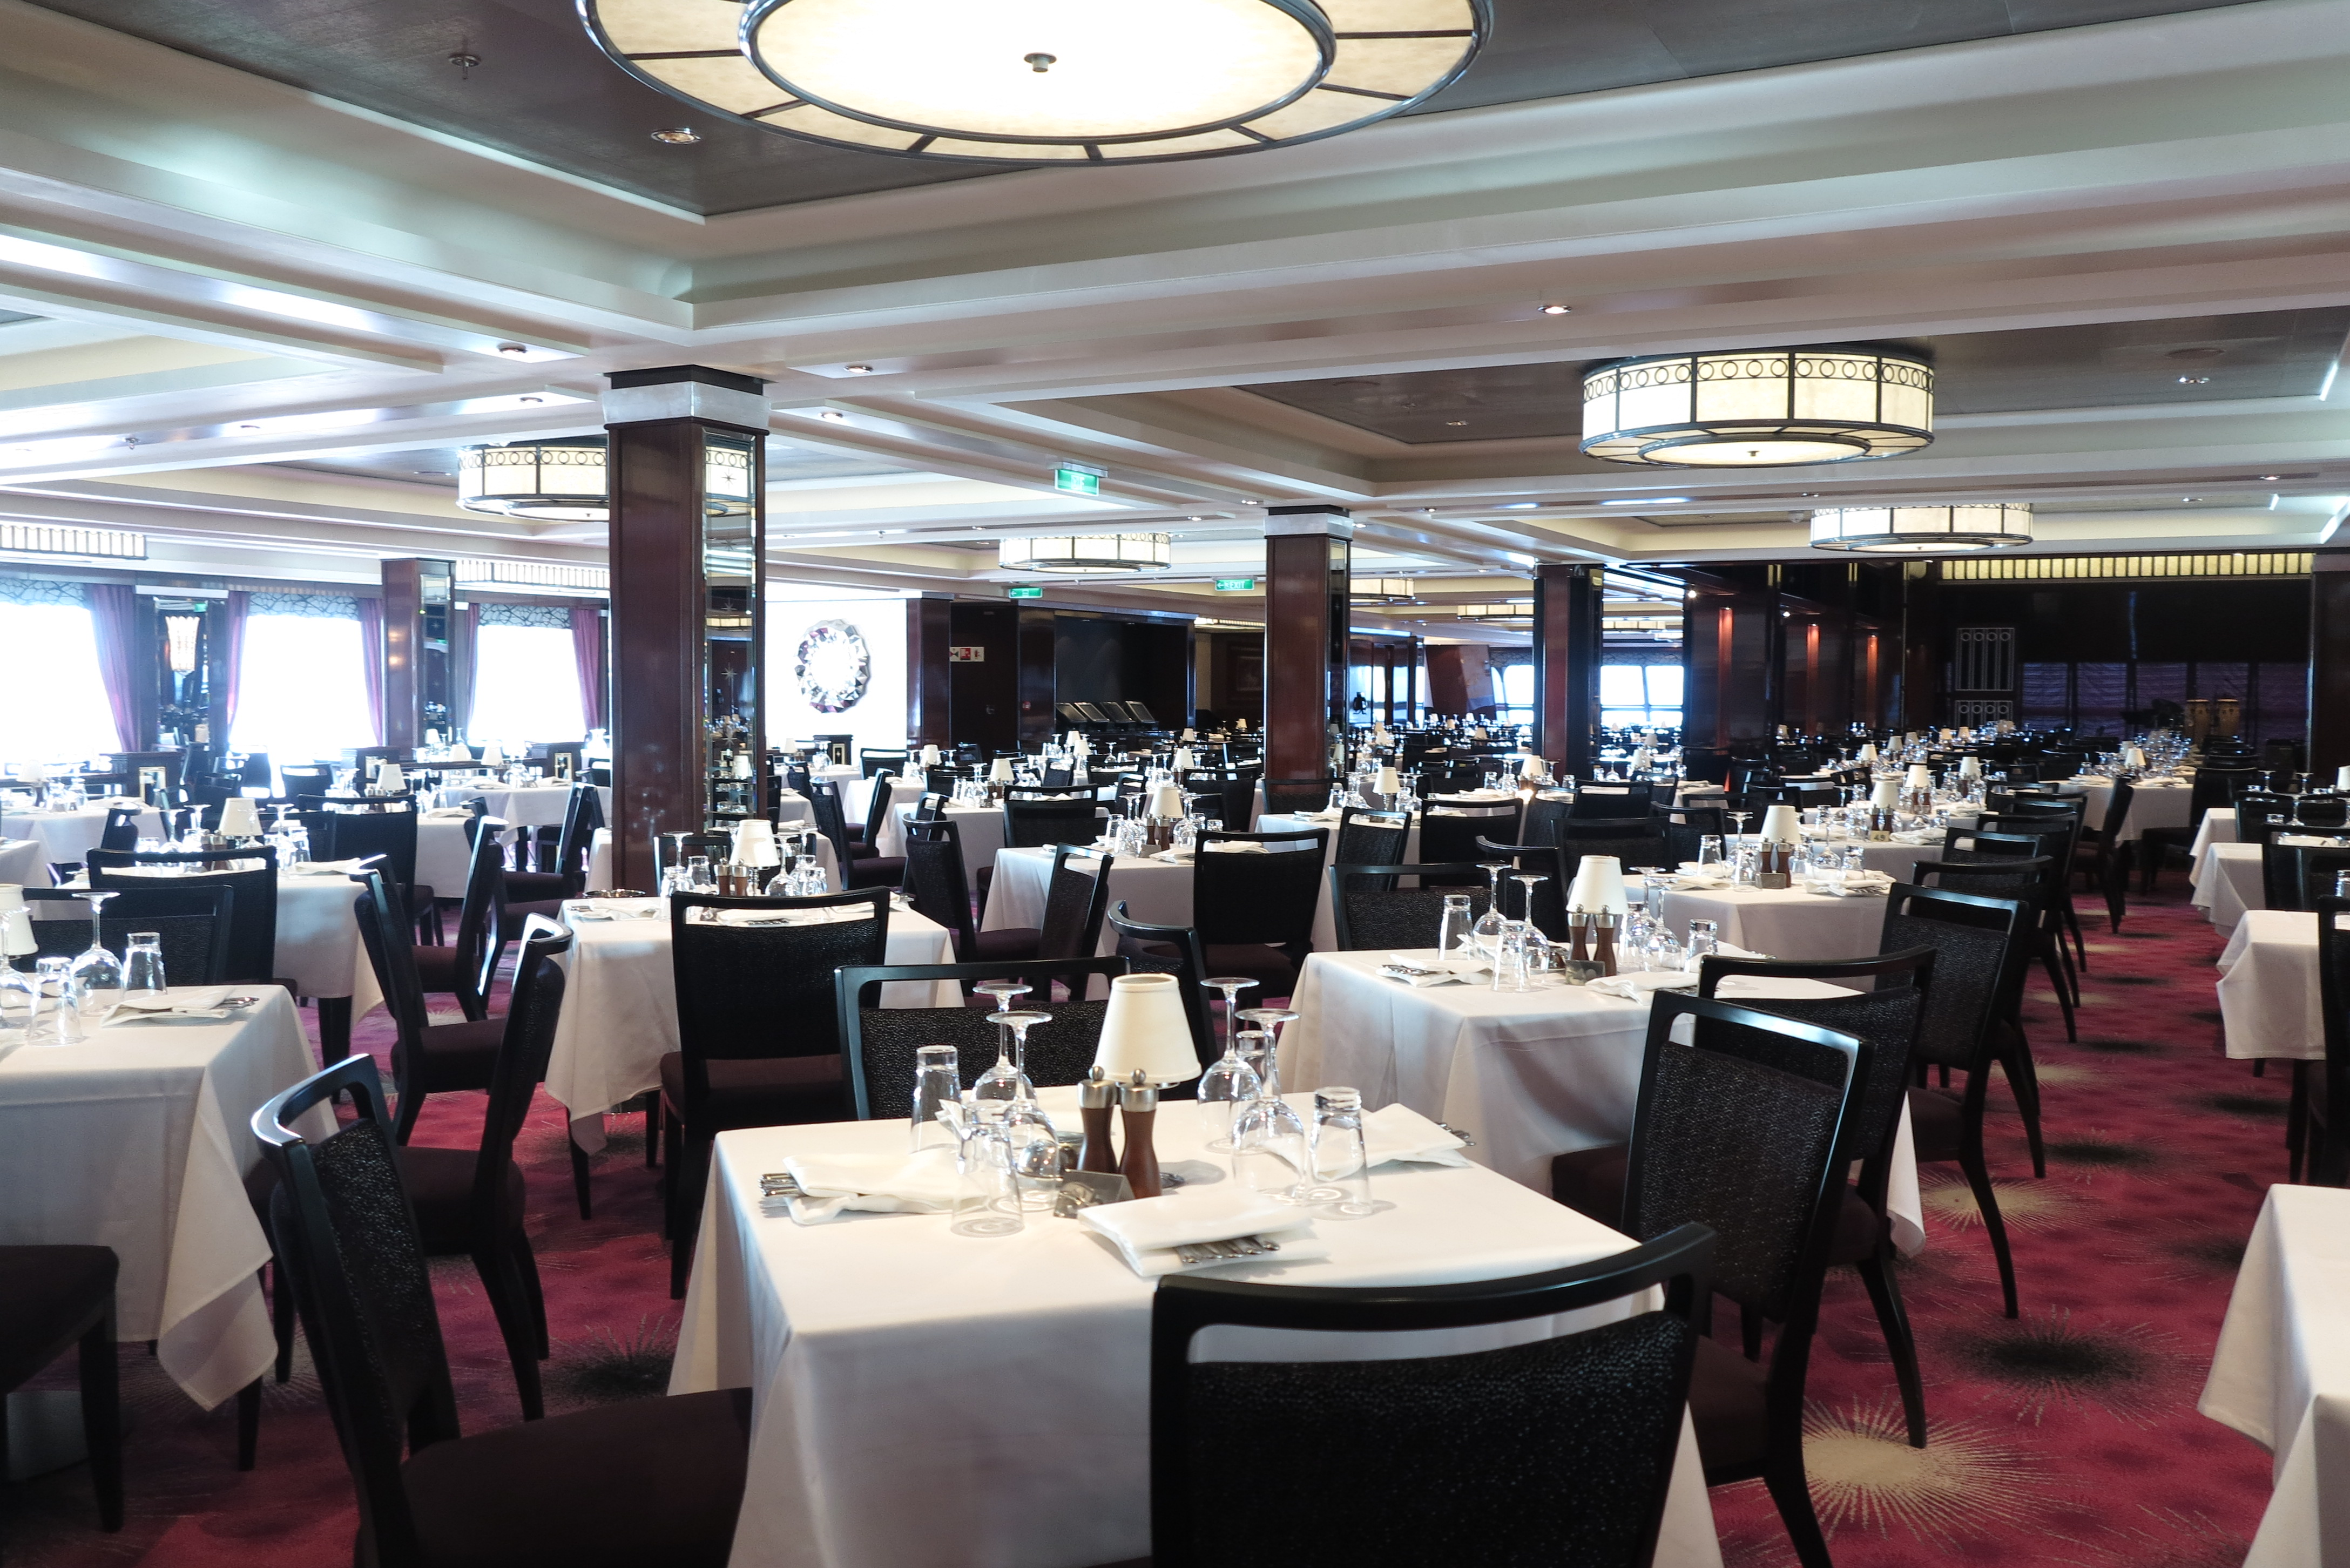 Stylish: The Tropicana Room Restaurant (Picture: Dave Monk)